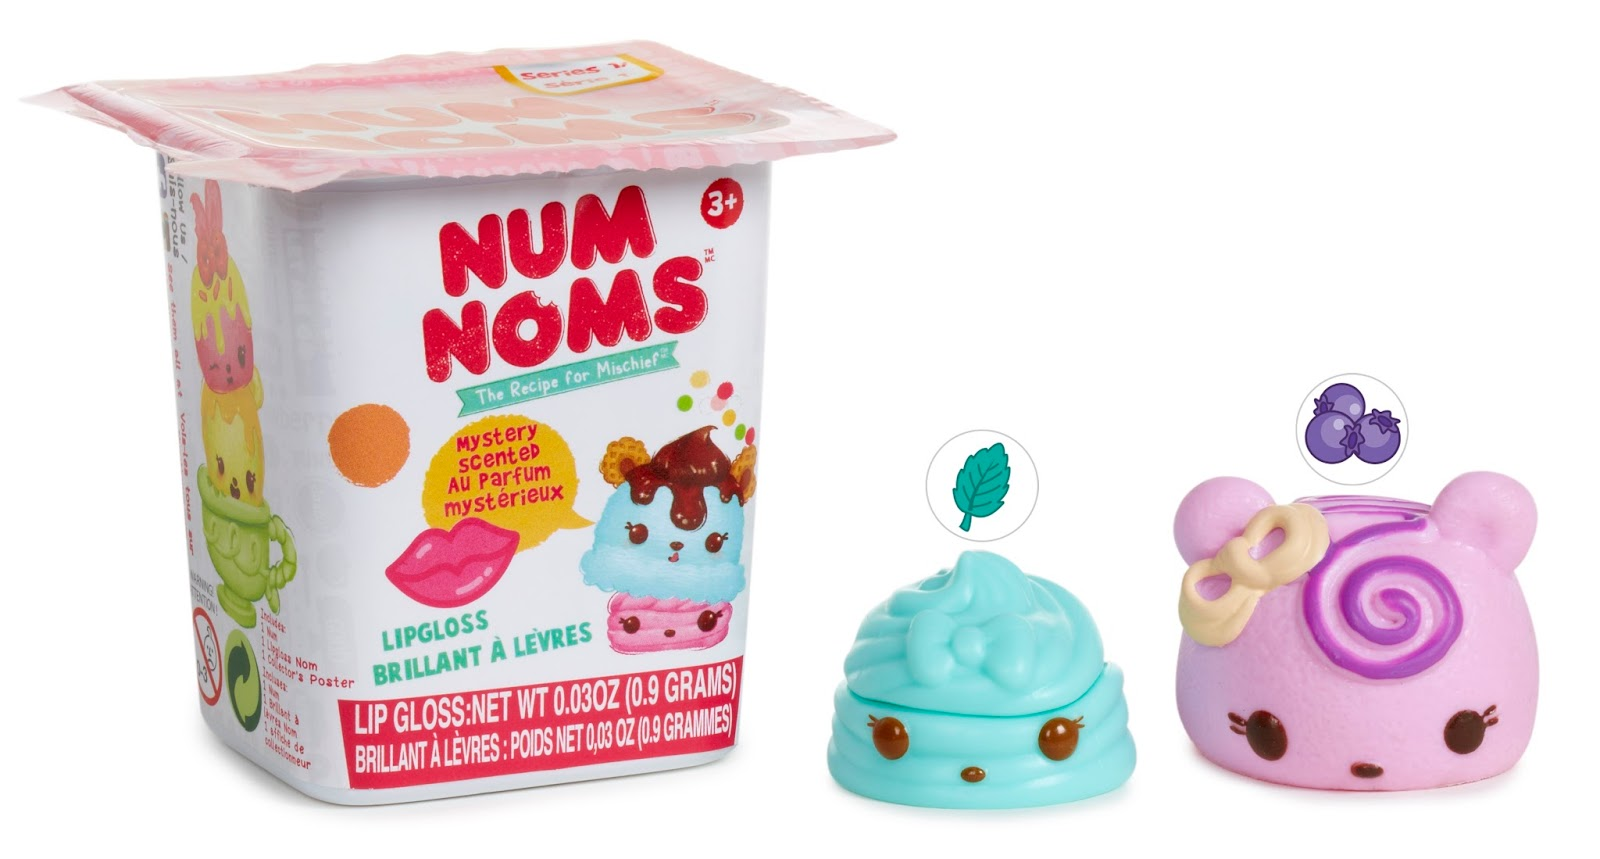 Image Result For Num Noms Coloring